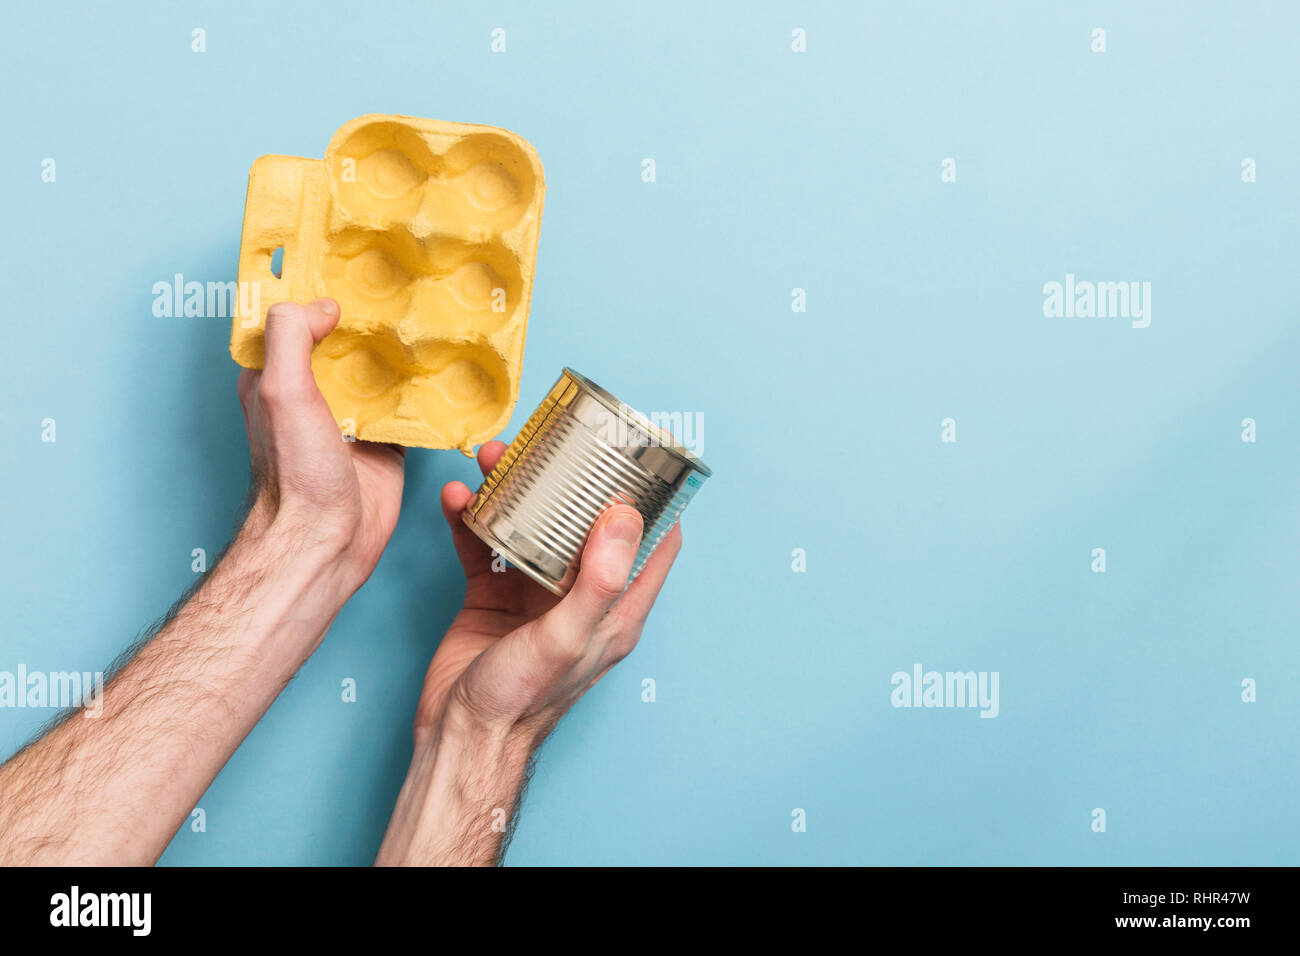 Hand holding recycling rubbish against a blue background - Stock Image